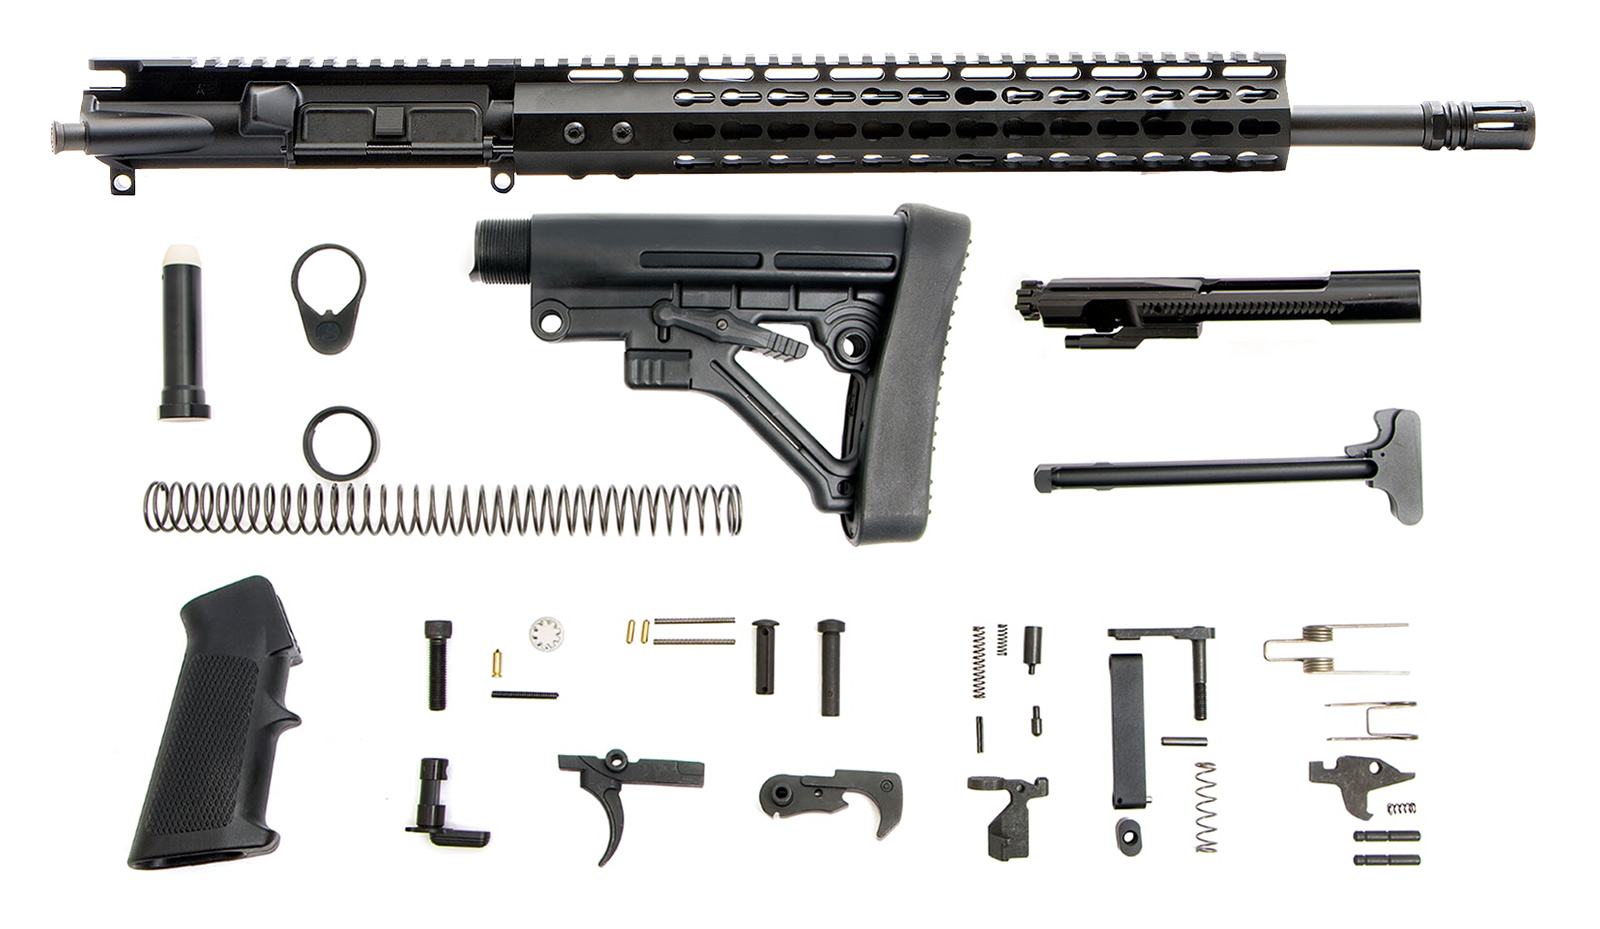 ar-15-rifle-kit-16-7-62-x-39-upper-assembly-13-gen-2-bolt-carrier-group-charging-handle-ar-15-buttstock-kit-ar-15-lower-parts-kit